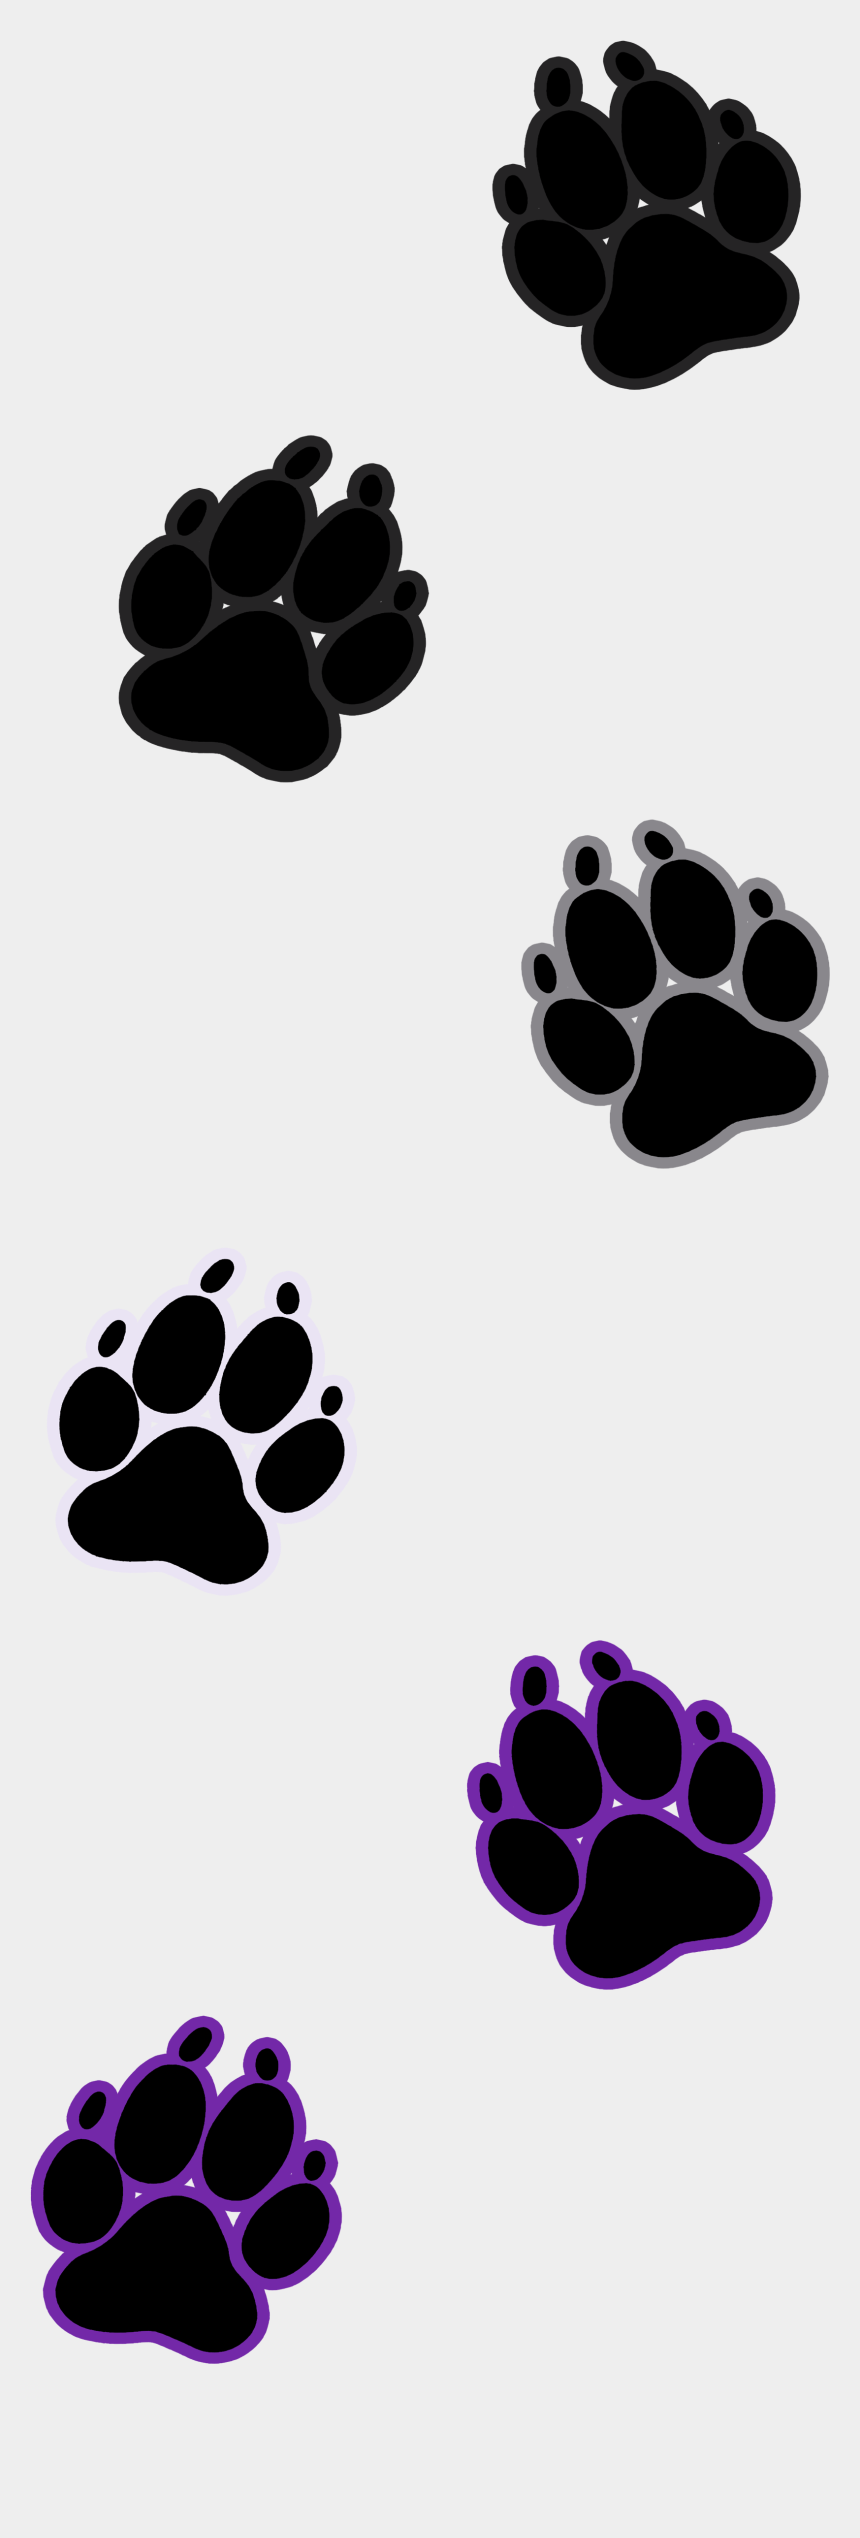 dog paw outline clipart, Cartoons - Dog Paw Print Asexual - Paw